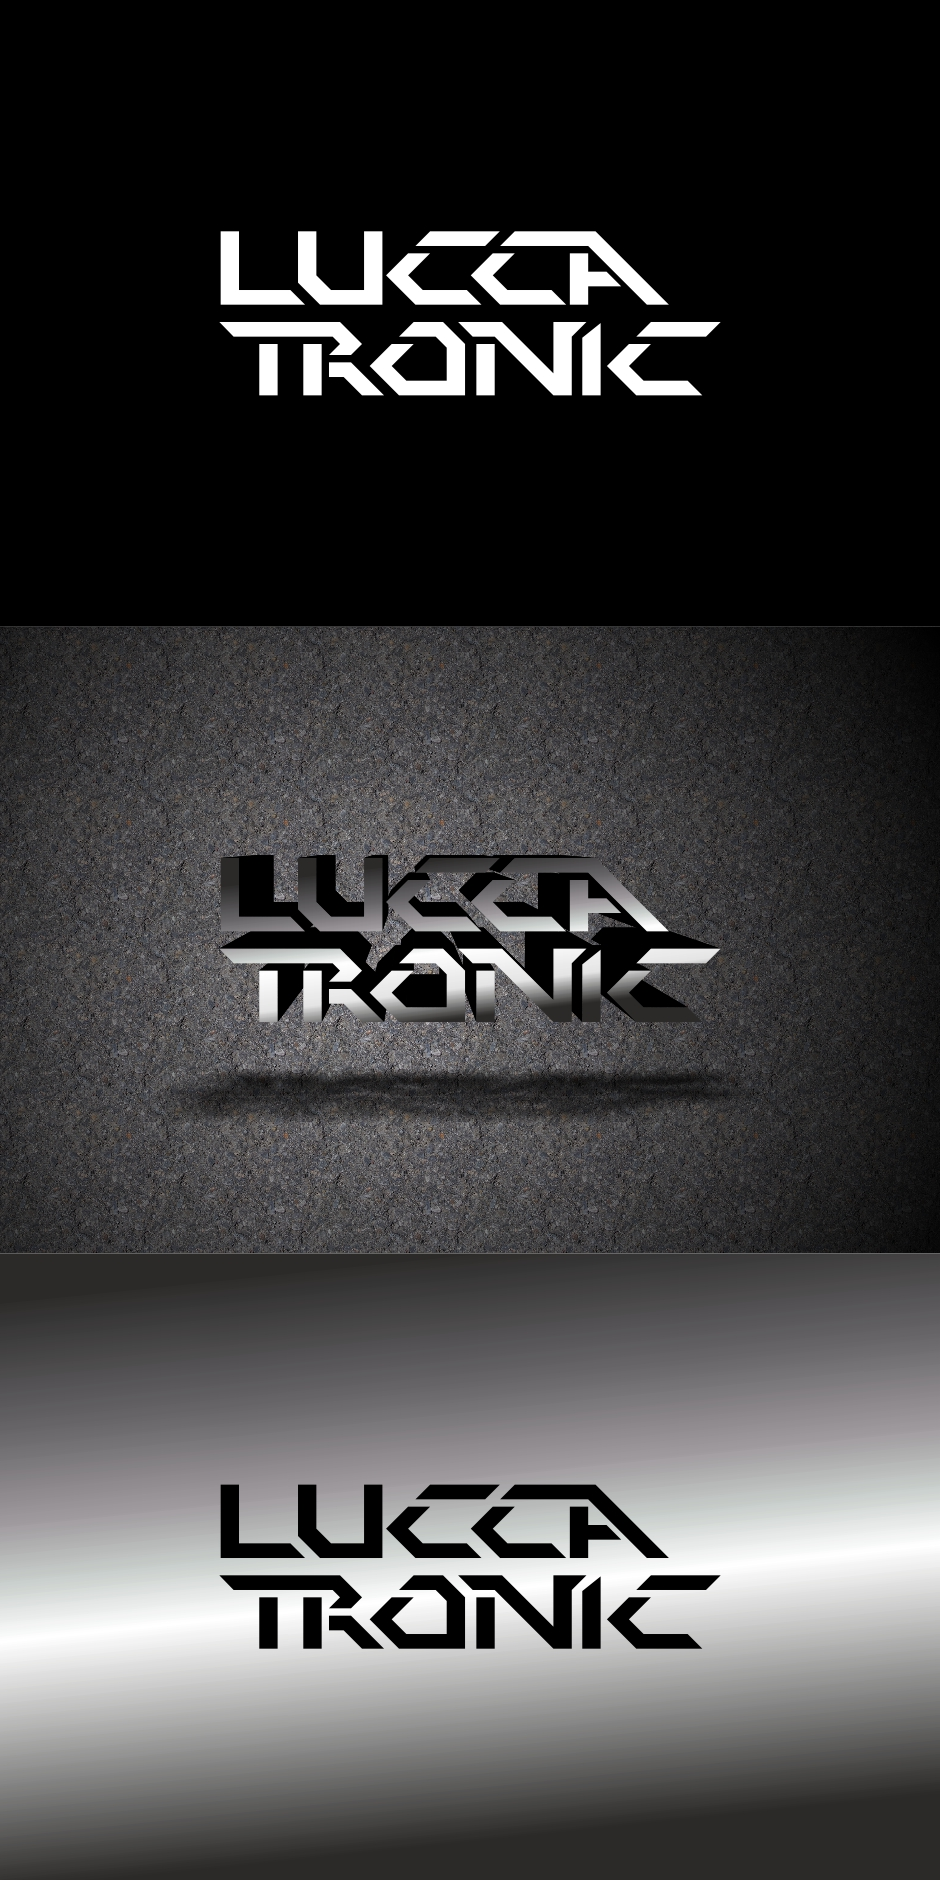 LUCCA TRONIC